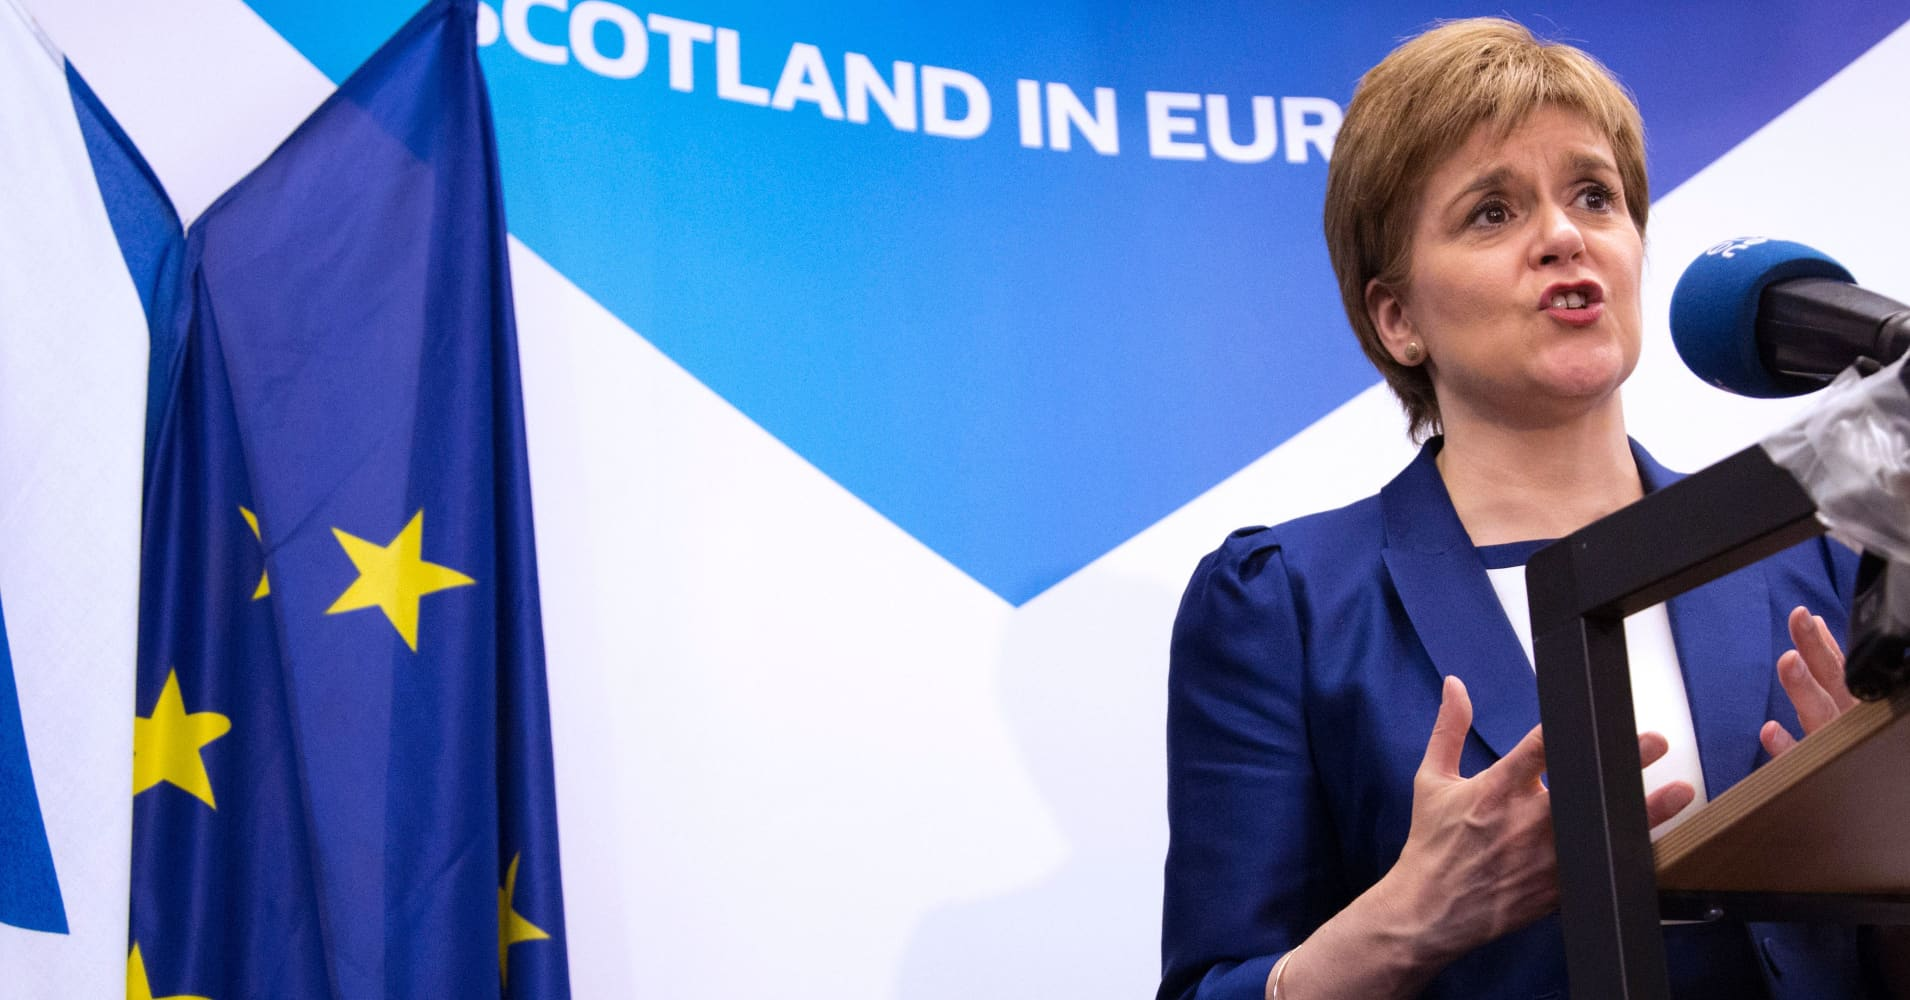 Pound Hit By Report Scotland Will Demand New Independence Vote